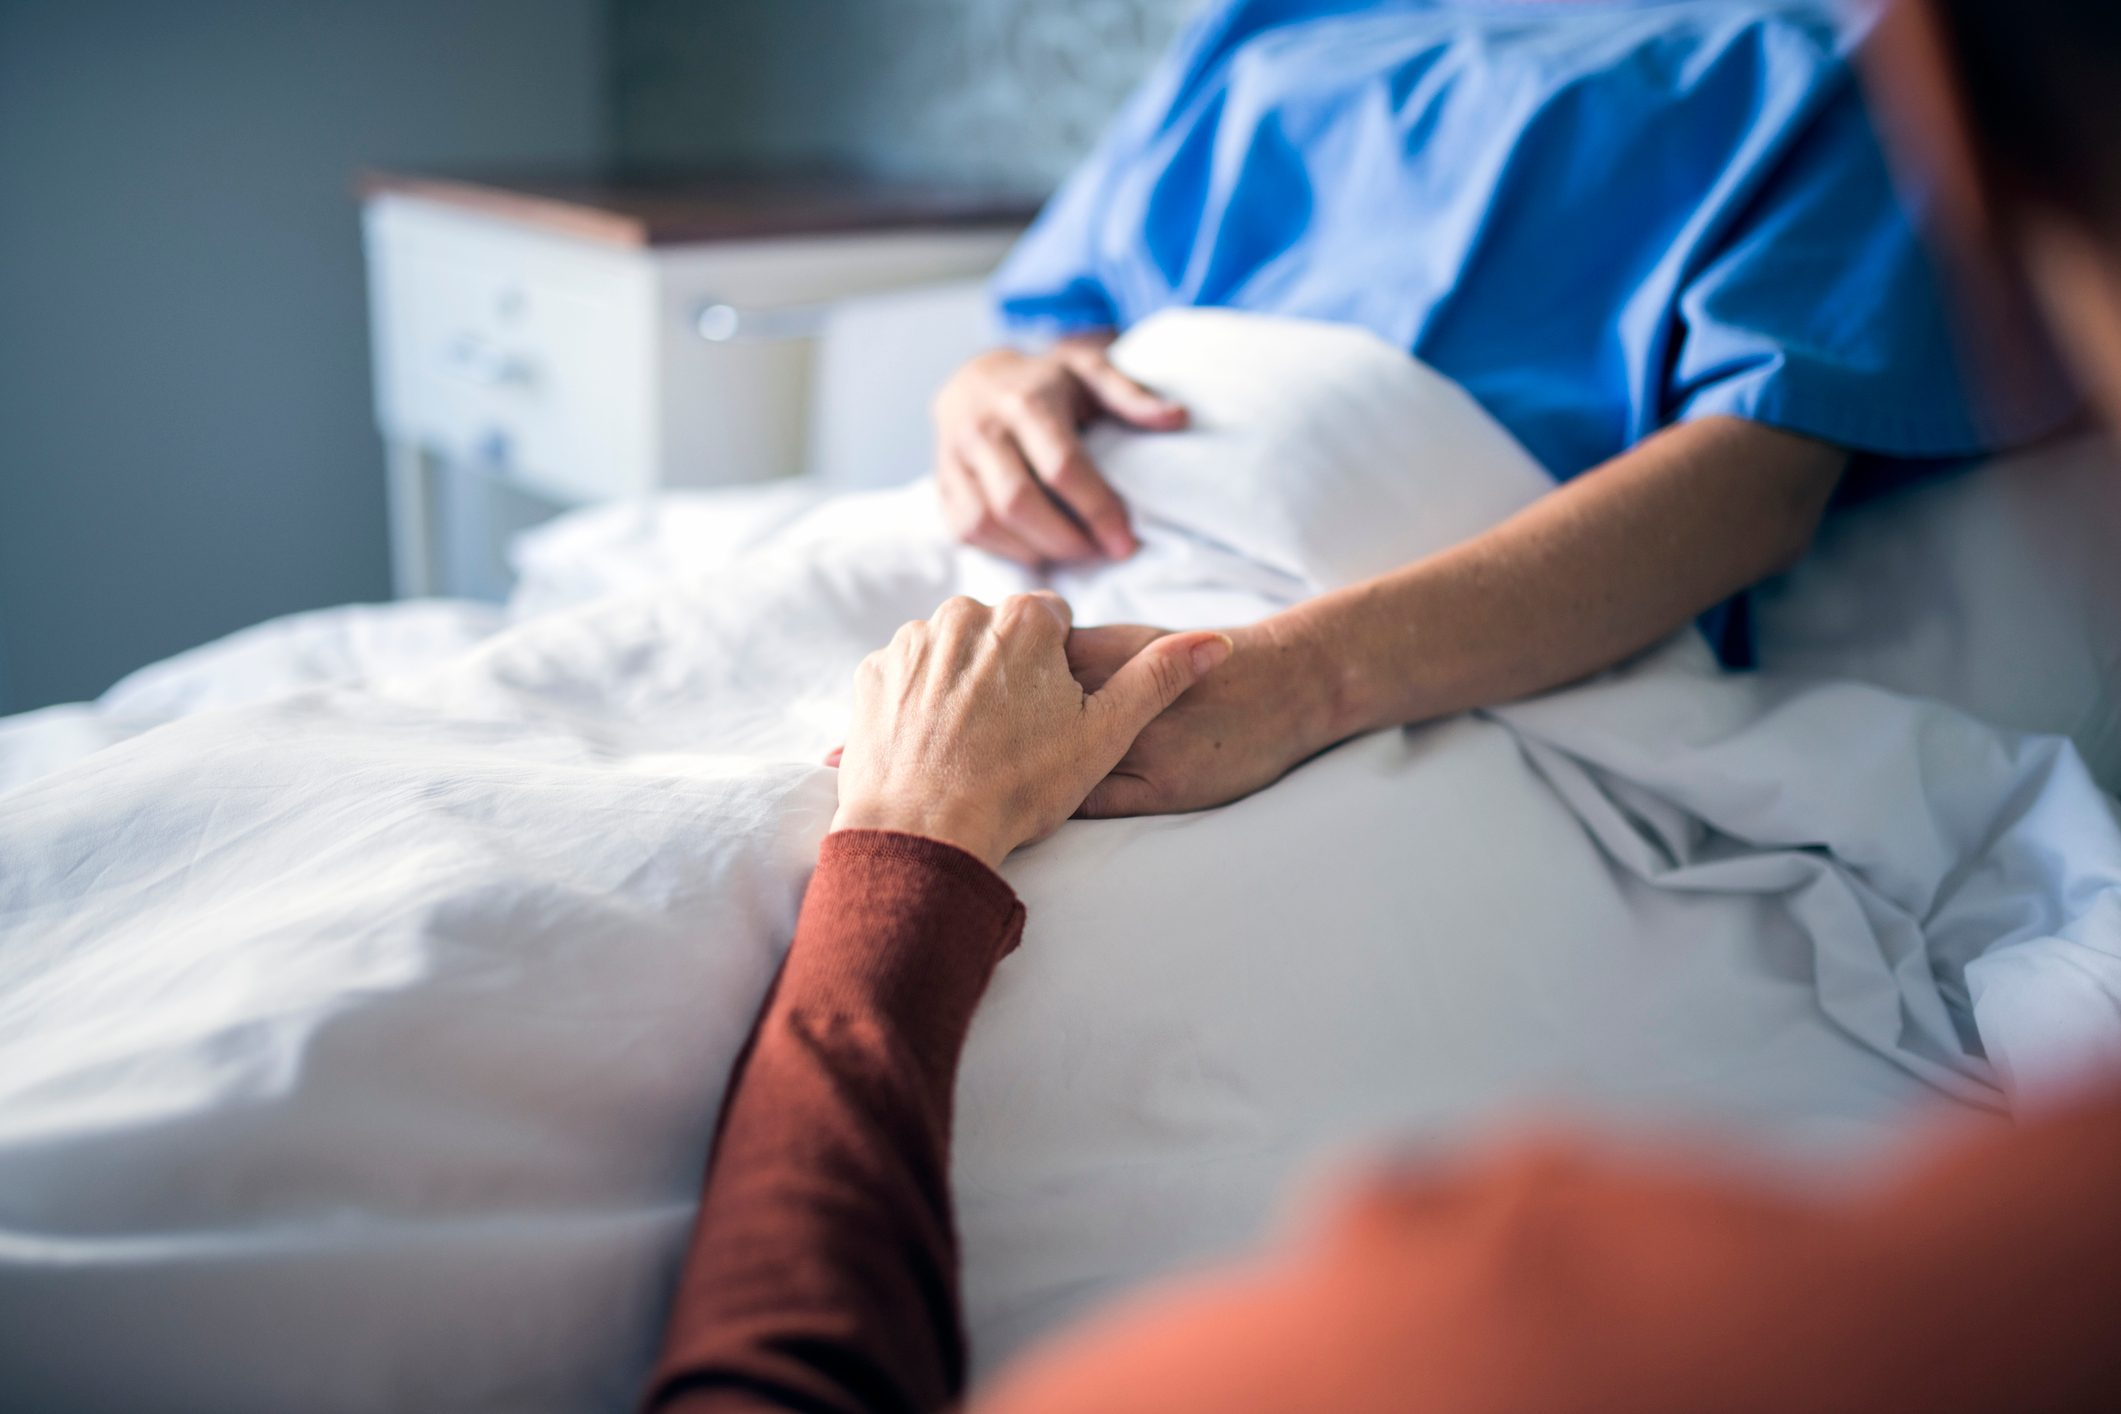 Woman holding hand of sister in hospital bed